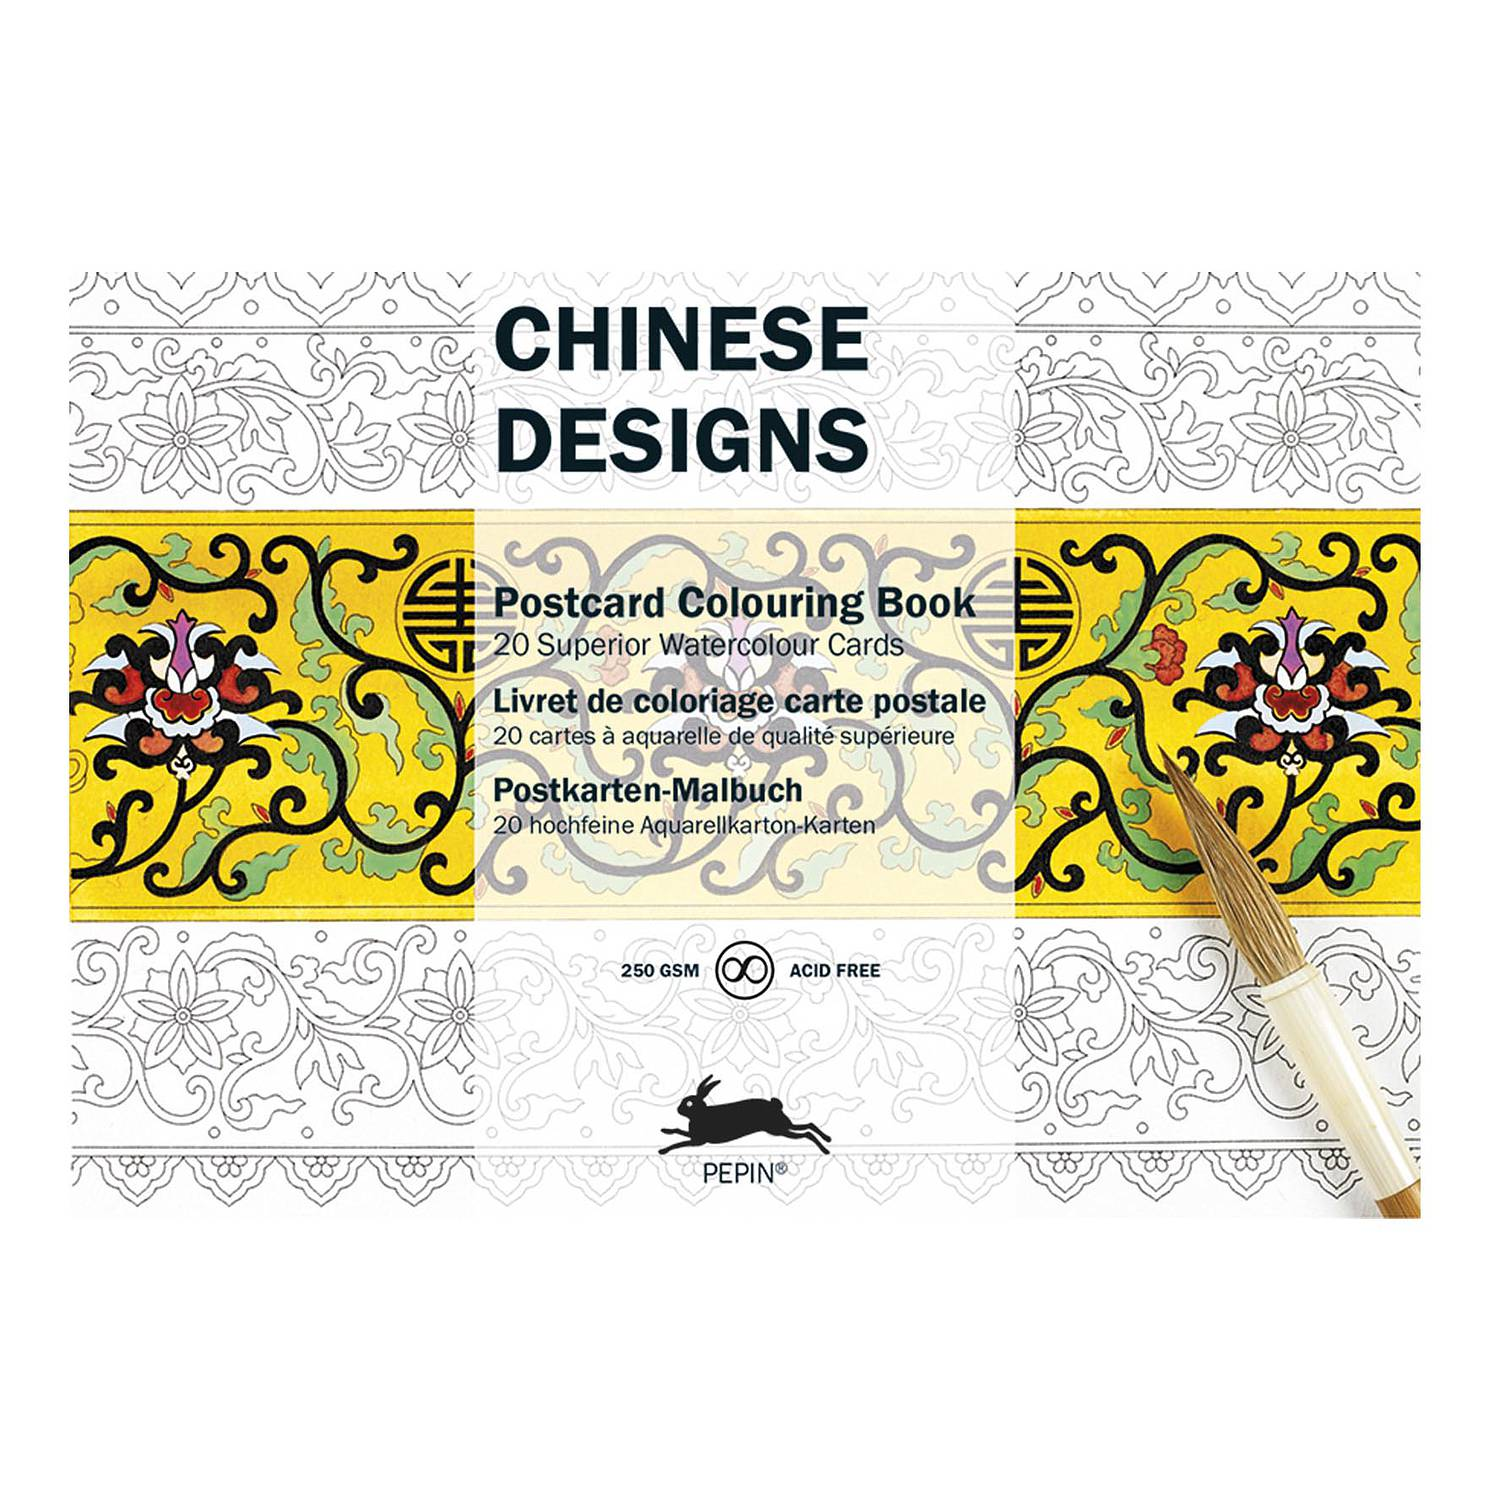 Postcard Colouring Book - Chinese Designs